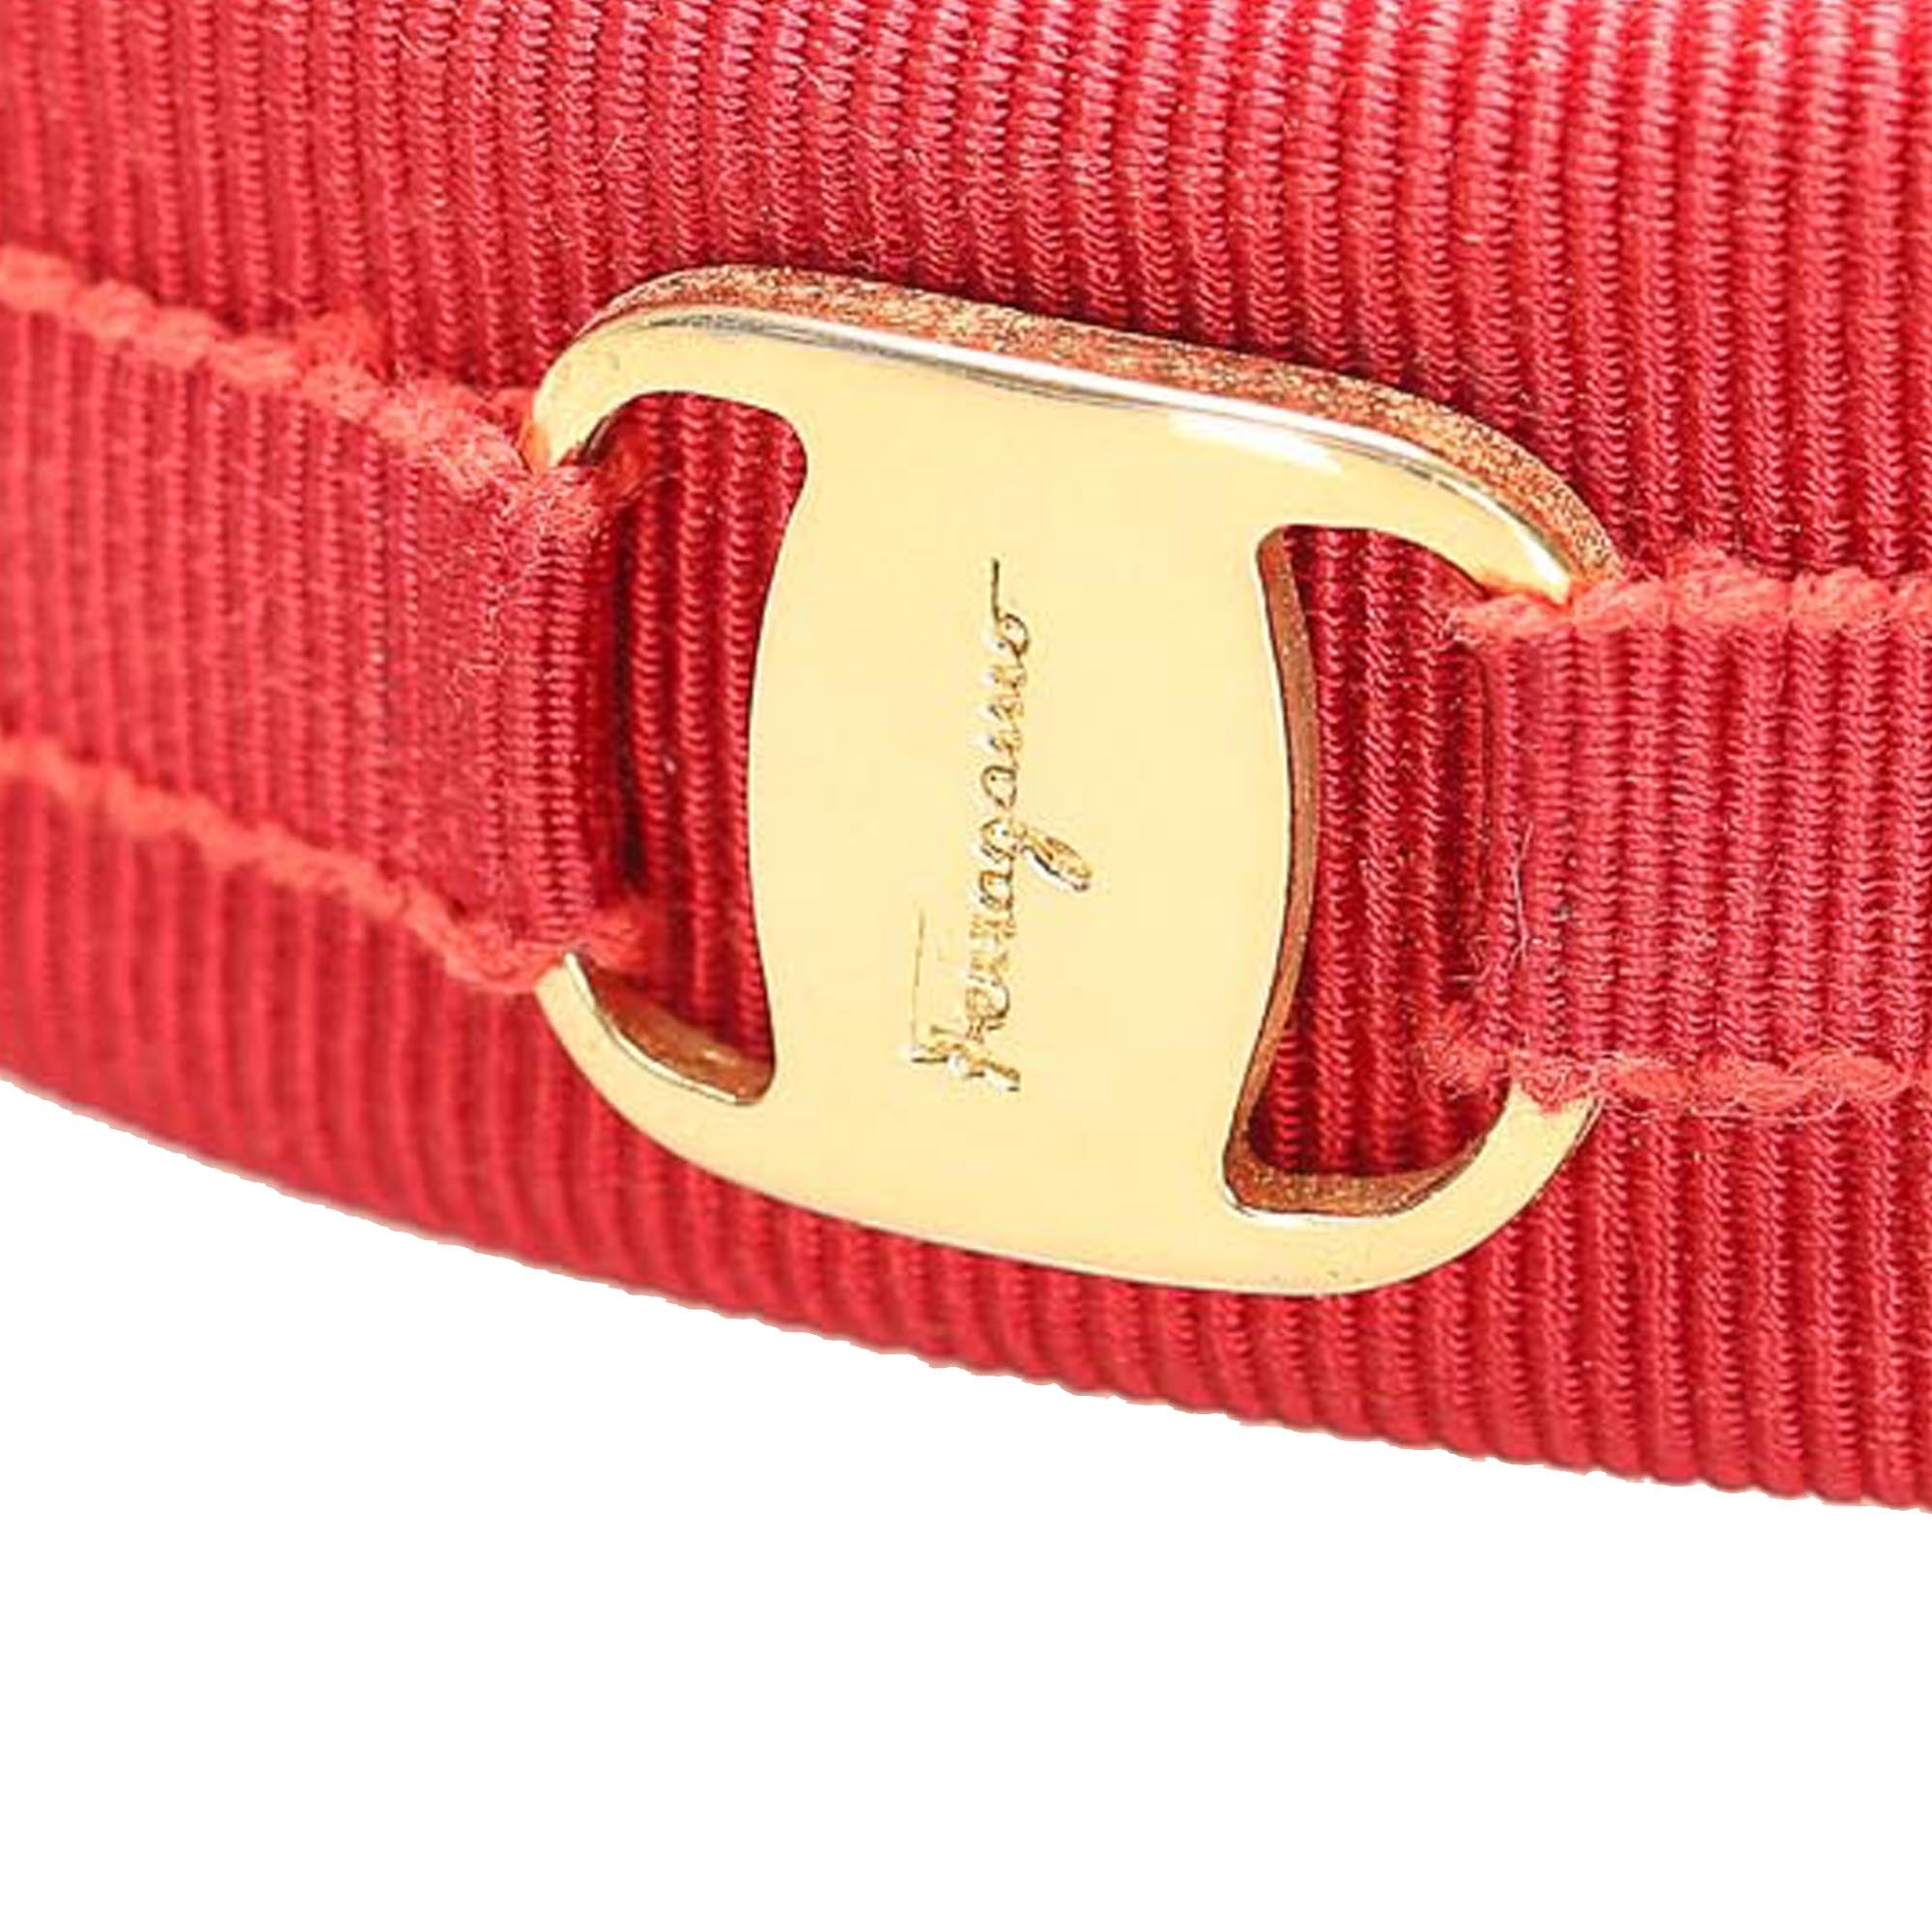 Ferragamo Red Vara Bow Grosgrain Headband